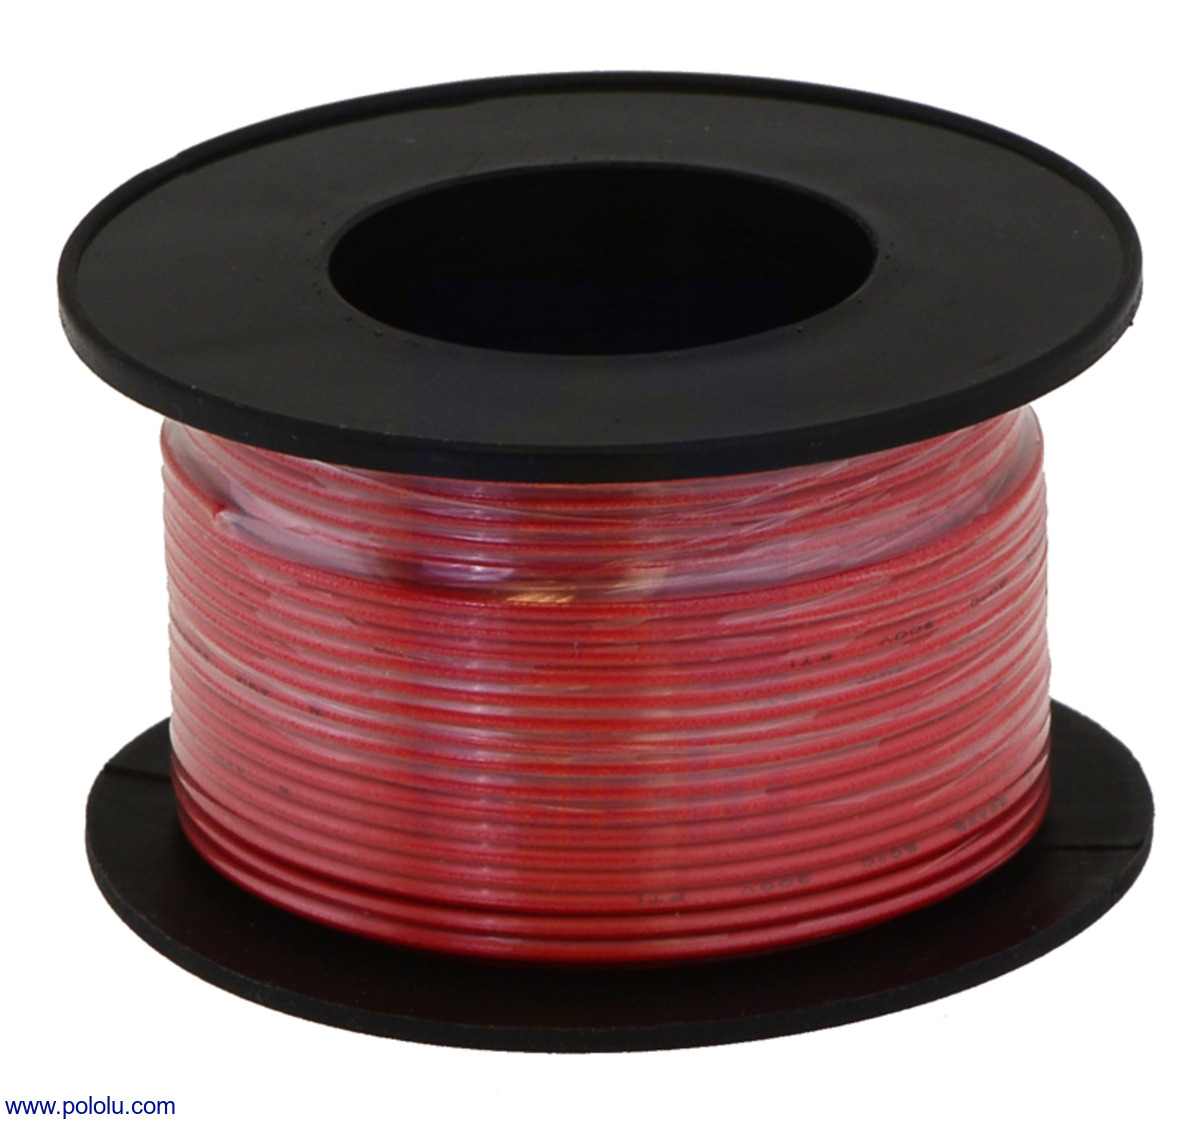 Pololu stranded wire red 28 awg 90 feet stranded wire red 28 awg 90 feet greentooth